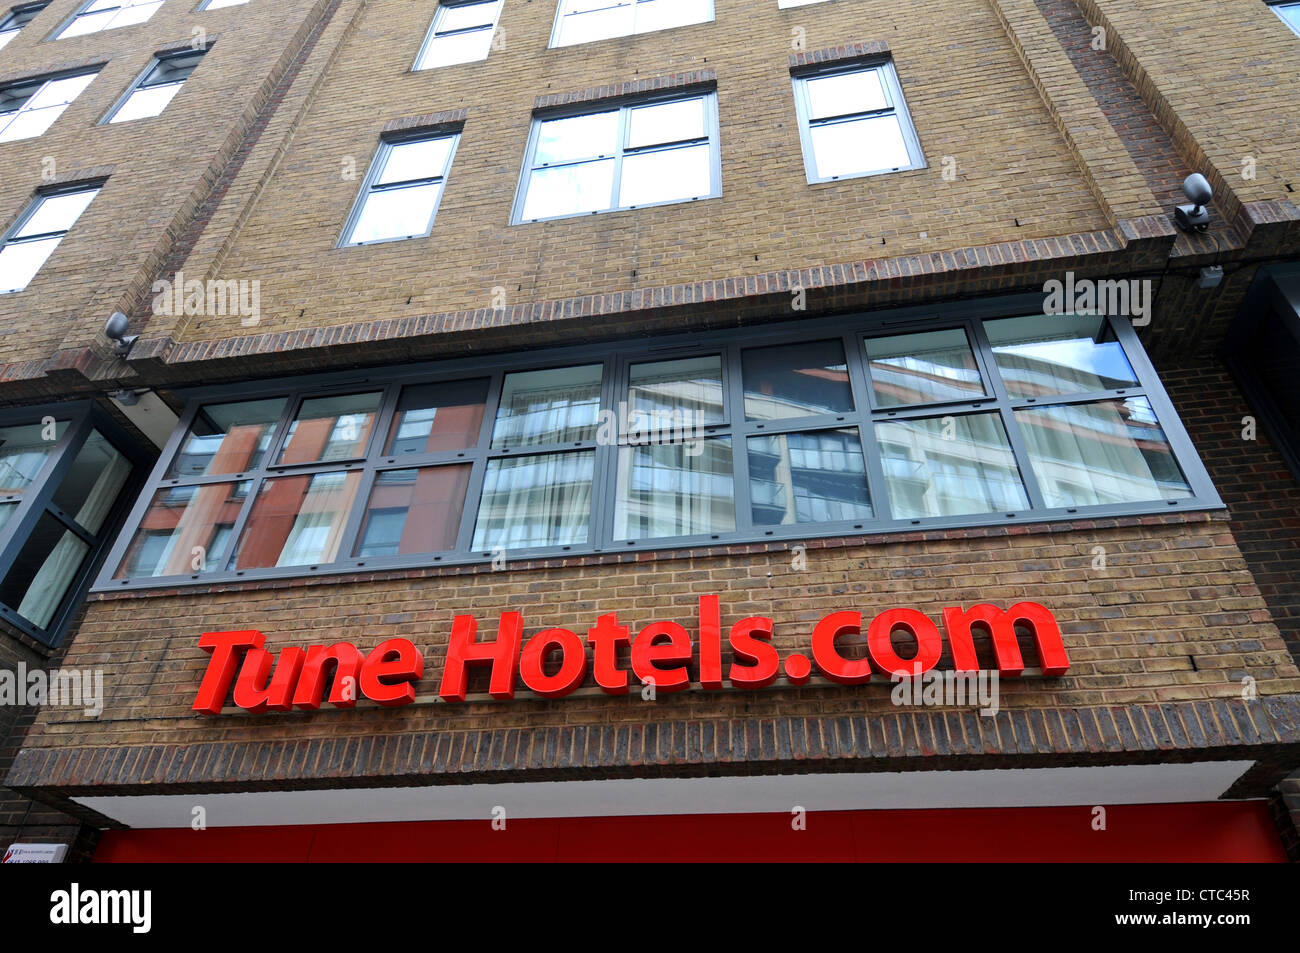 Tunehotels Stock Photos & Tunehotels Stock Images - Alamy